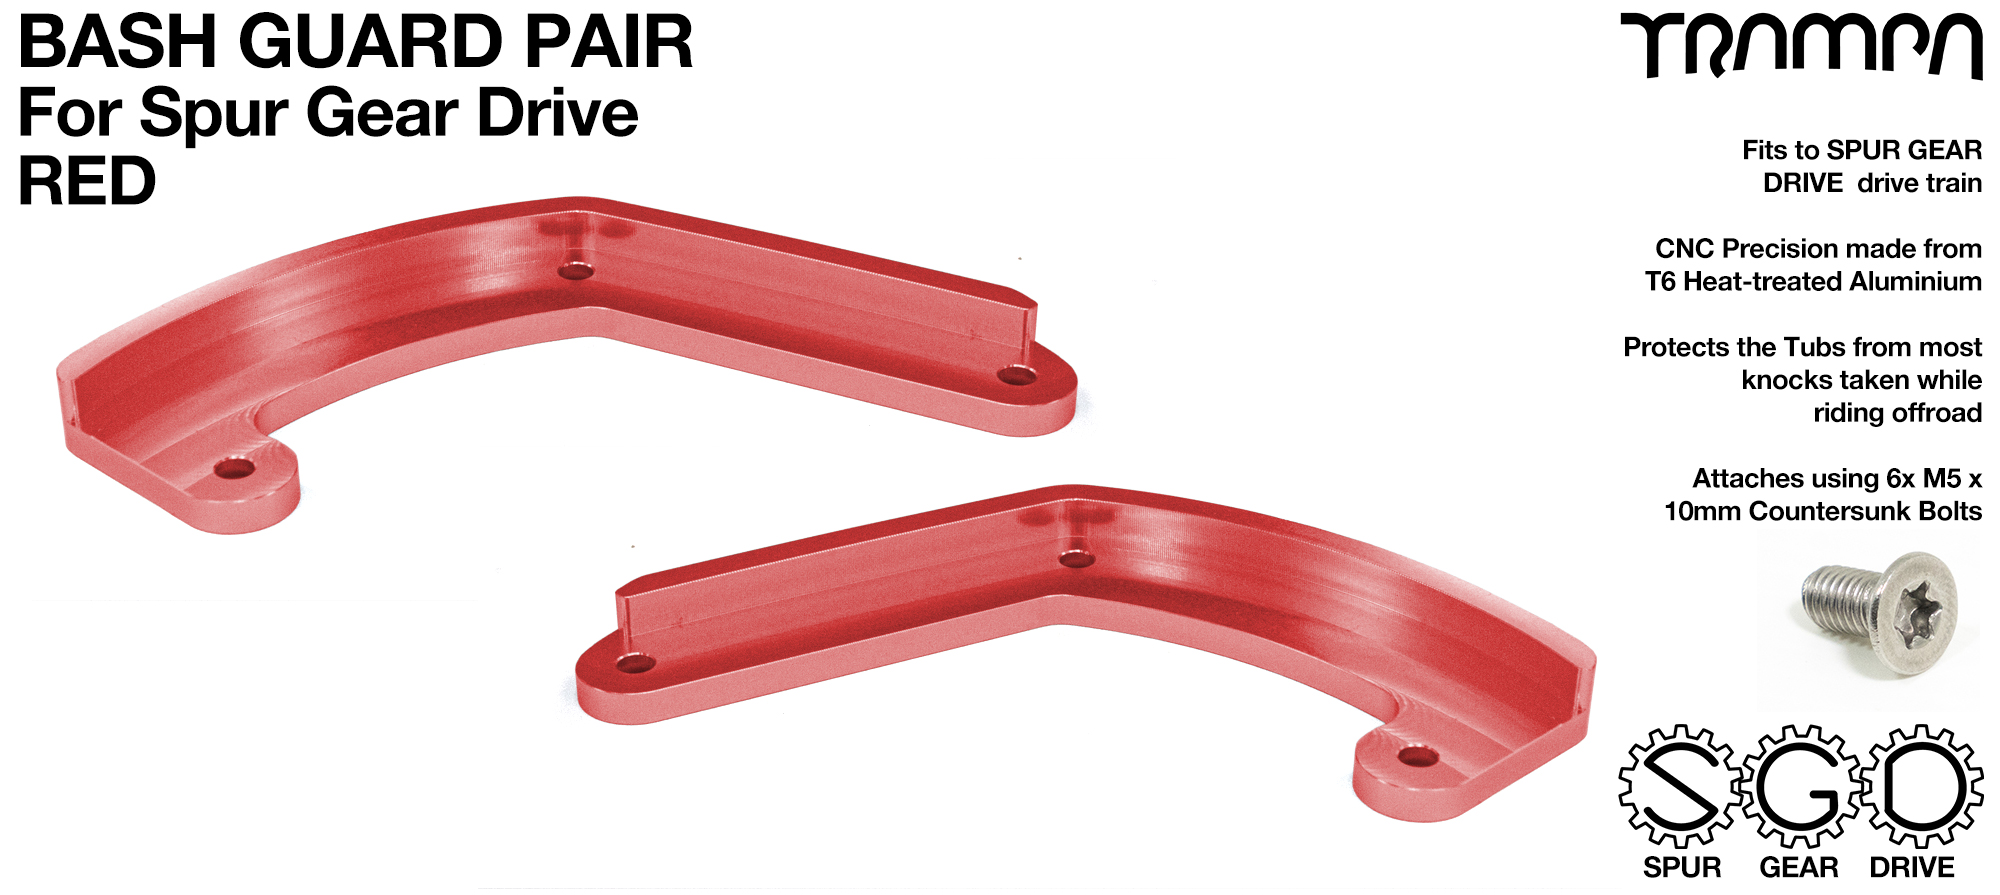 MkII Spur Gear Drive Bash Guards PAIR - RED